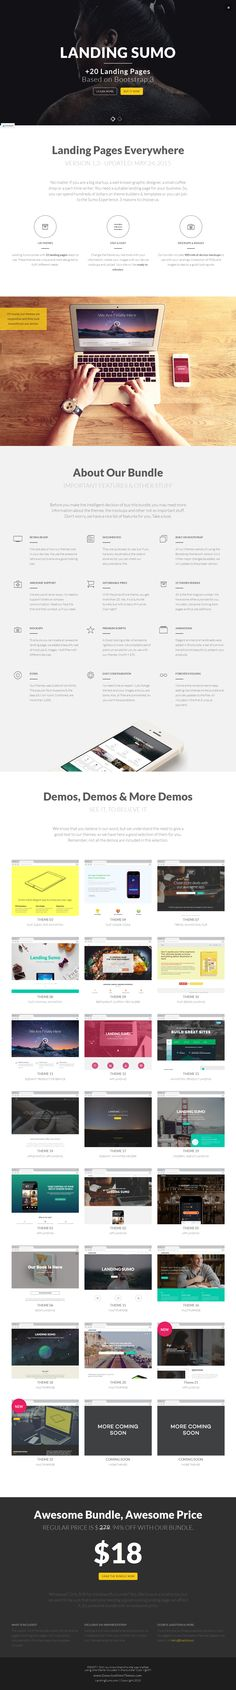 LANDING SUMO is a premium bundle with more than 20 #Bootstrap Landing Pages #Template ready to use. These themes are unique and were designed to fulfill different needs. #LandingPage